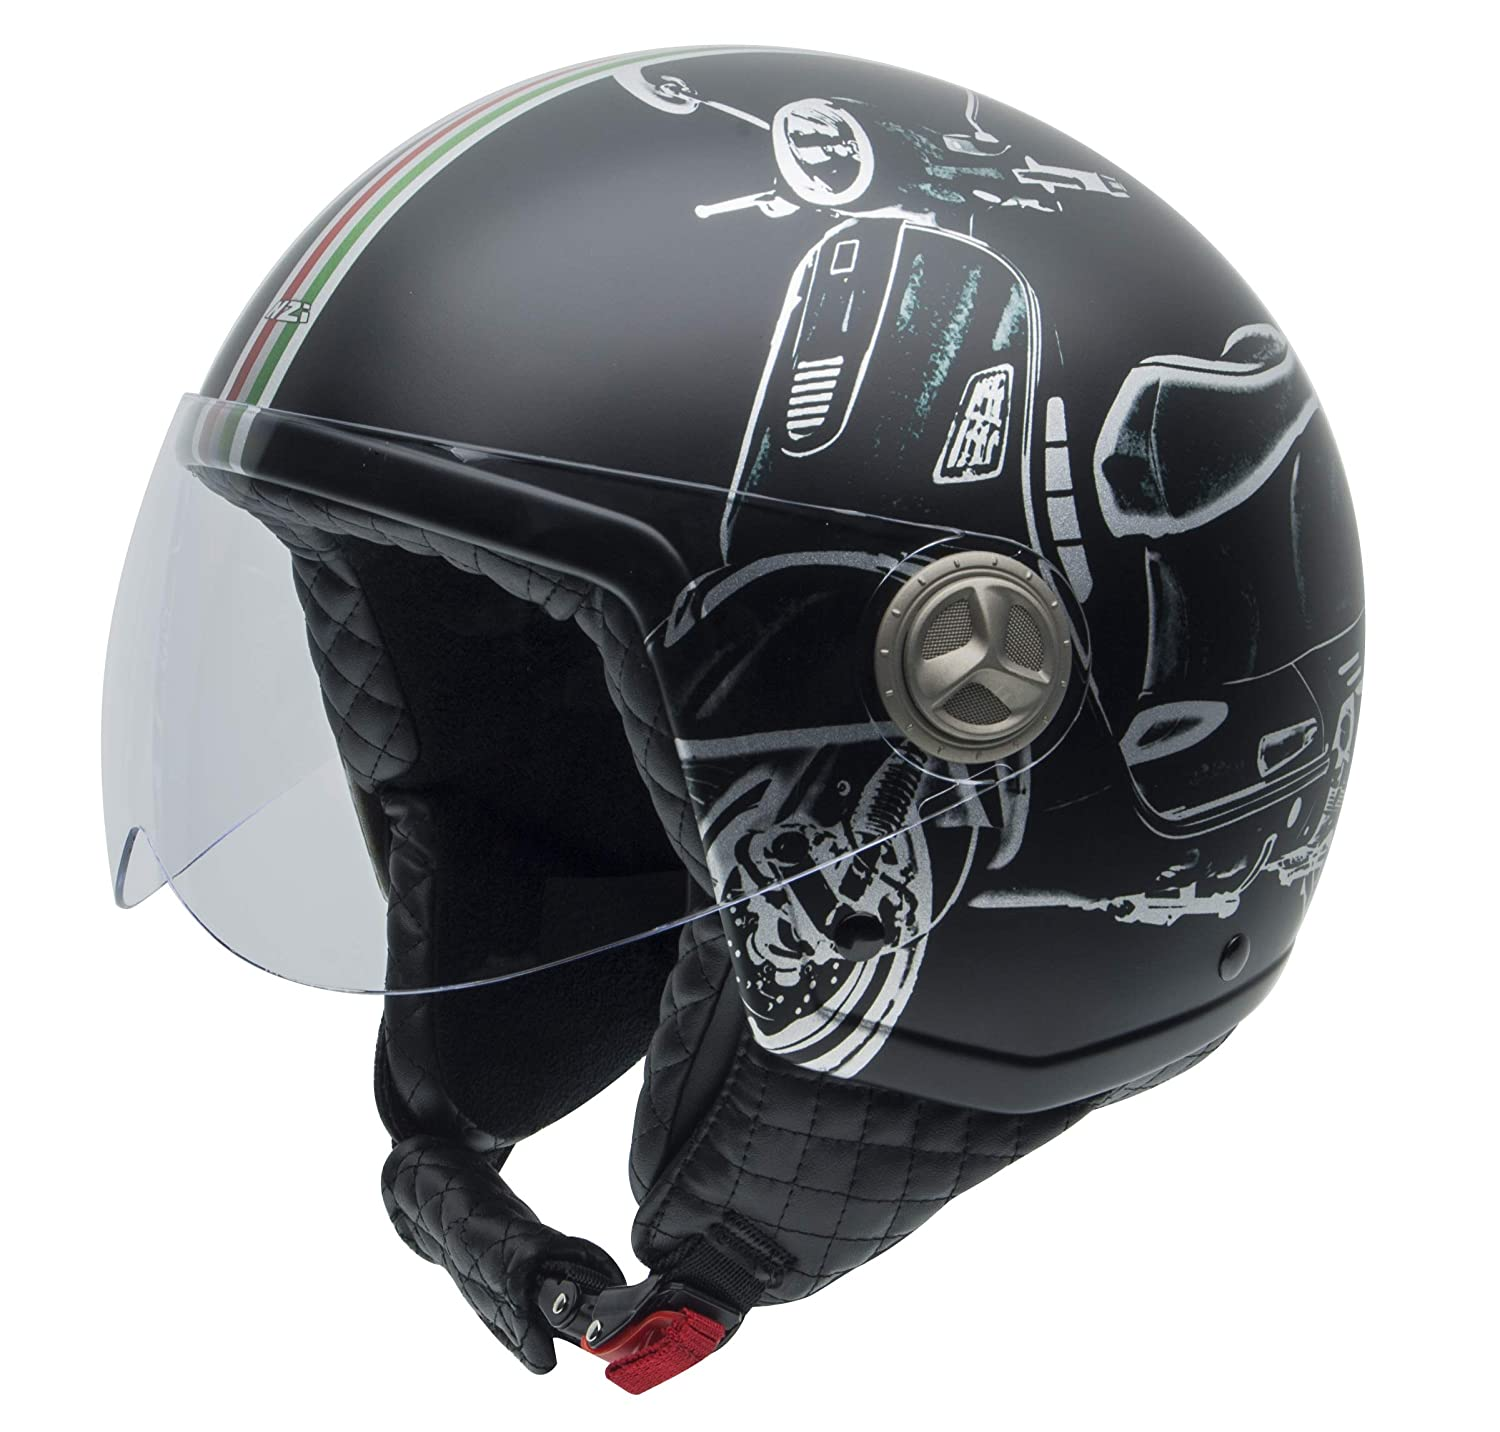 NZI Zeta Casco Graphics B Vespa Turia, B-VESPA TURIA, Talla XL NZI TECHNICAL PROTECTION S.L. 050267A046XL